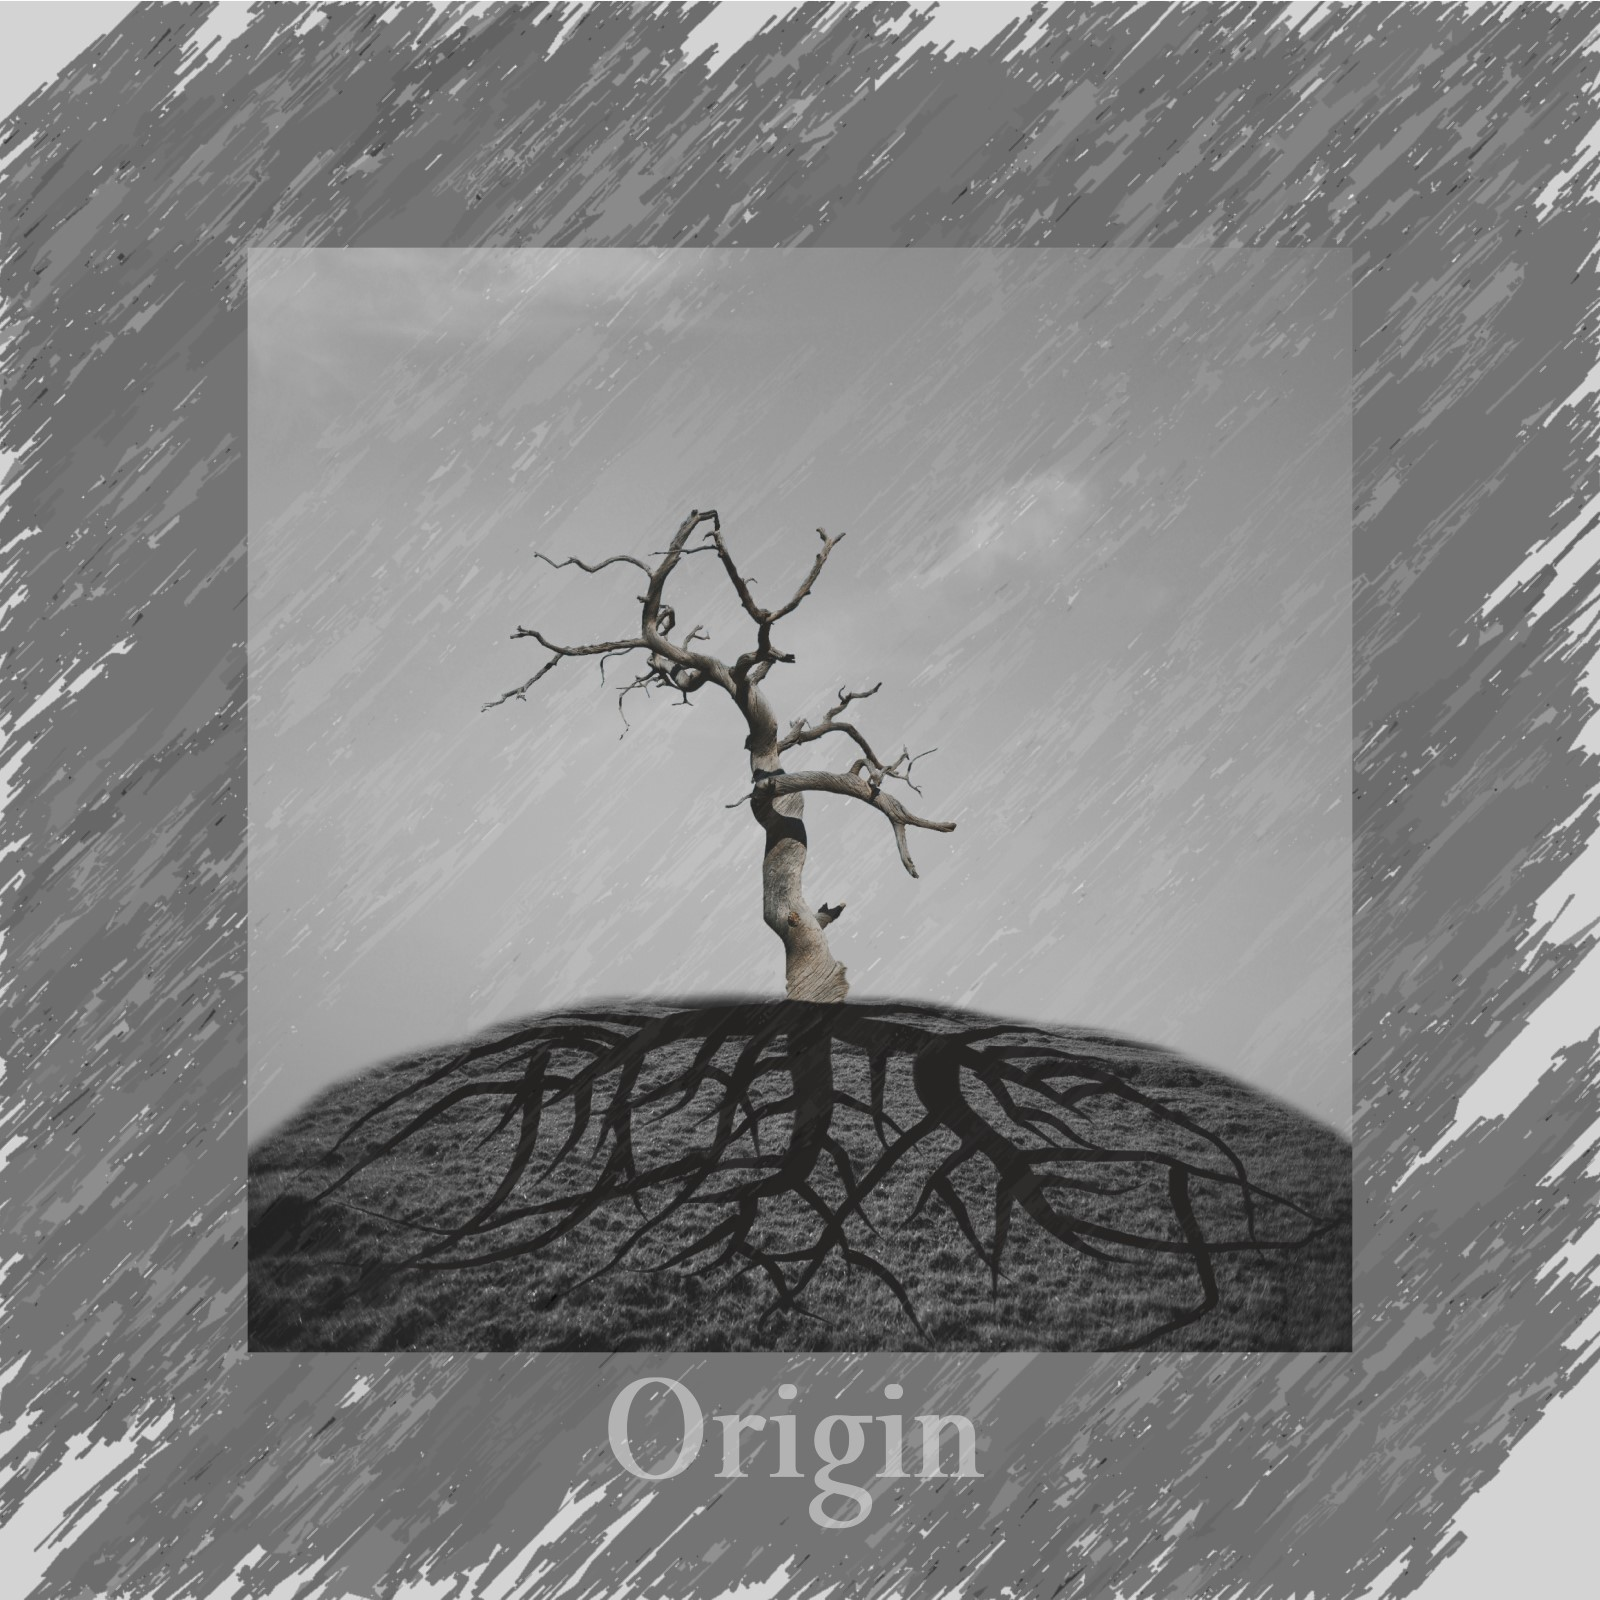 9. Origin - My first melodic metal album. 8 rough pieces with a cinematic and melodic touch.